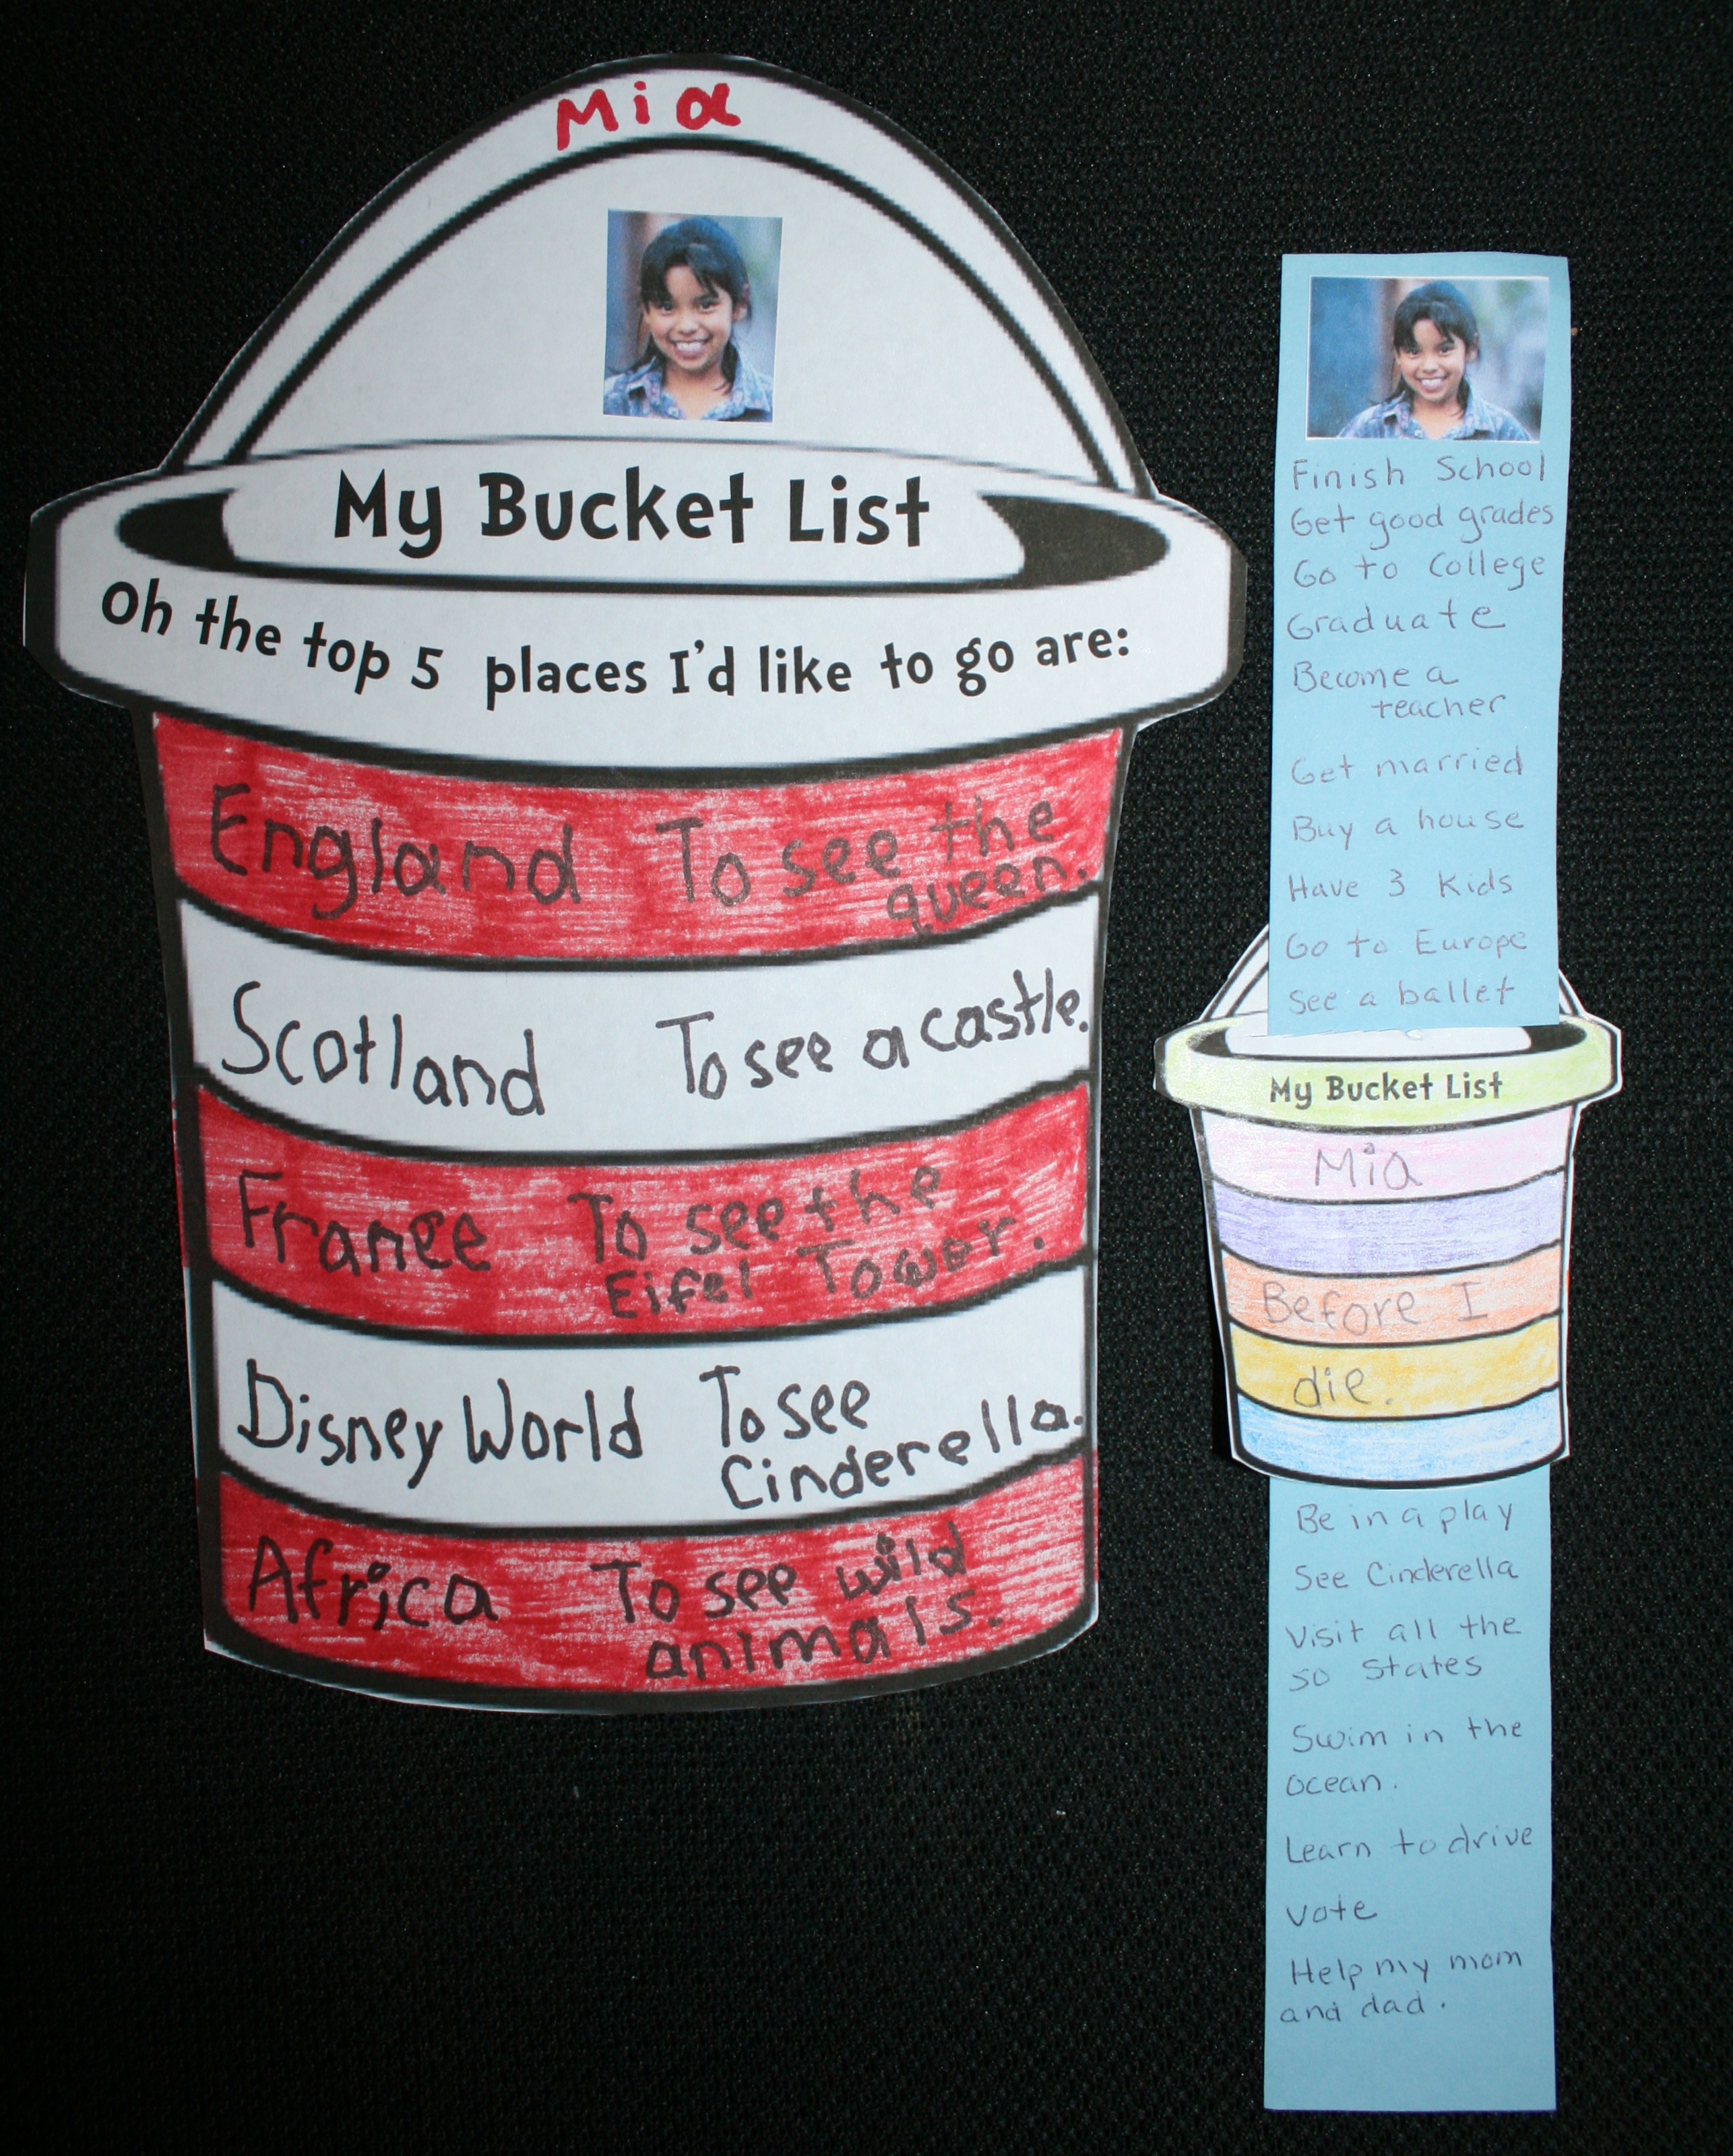 seuss activities, seuss hat activities, candy bar wrappers, seuss candy bar wrappers,oh the places you'll go activities, activities for oh the places you'll go, seuss bulletin boards, writing prompt bulletin boards, march is reading month bulletin boards, oh the places you'll go bulletin boards, seuss writing prompts, writing prompts for march, bucket list activities, bucket list writing prompts, seuss crafts, oh the places you'll go crafts,